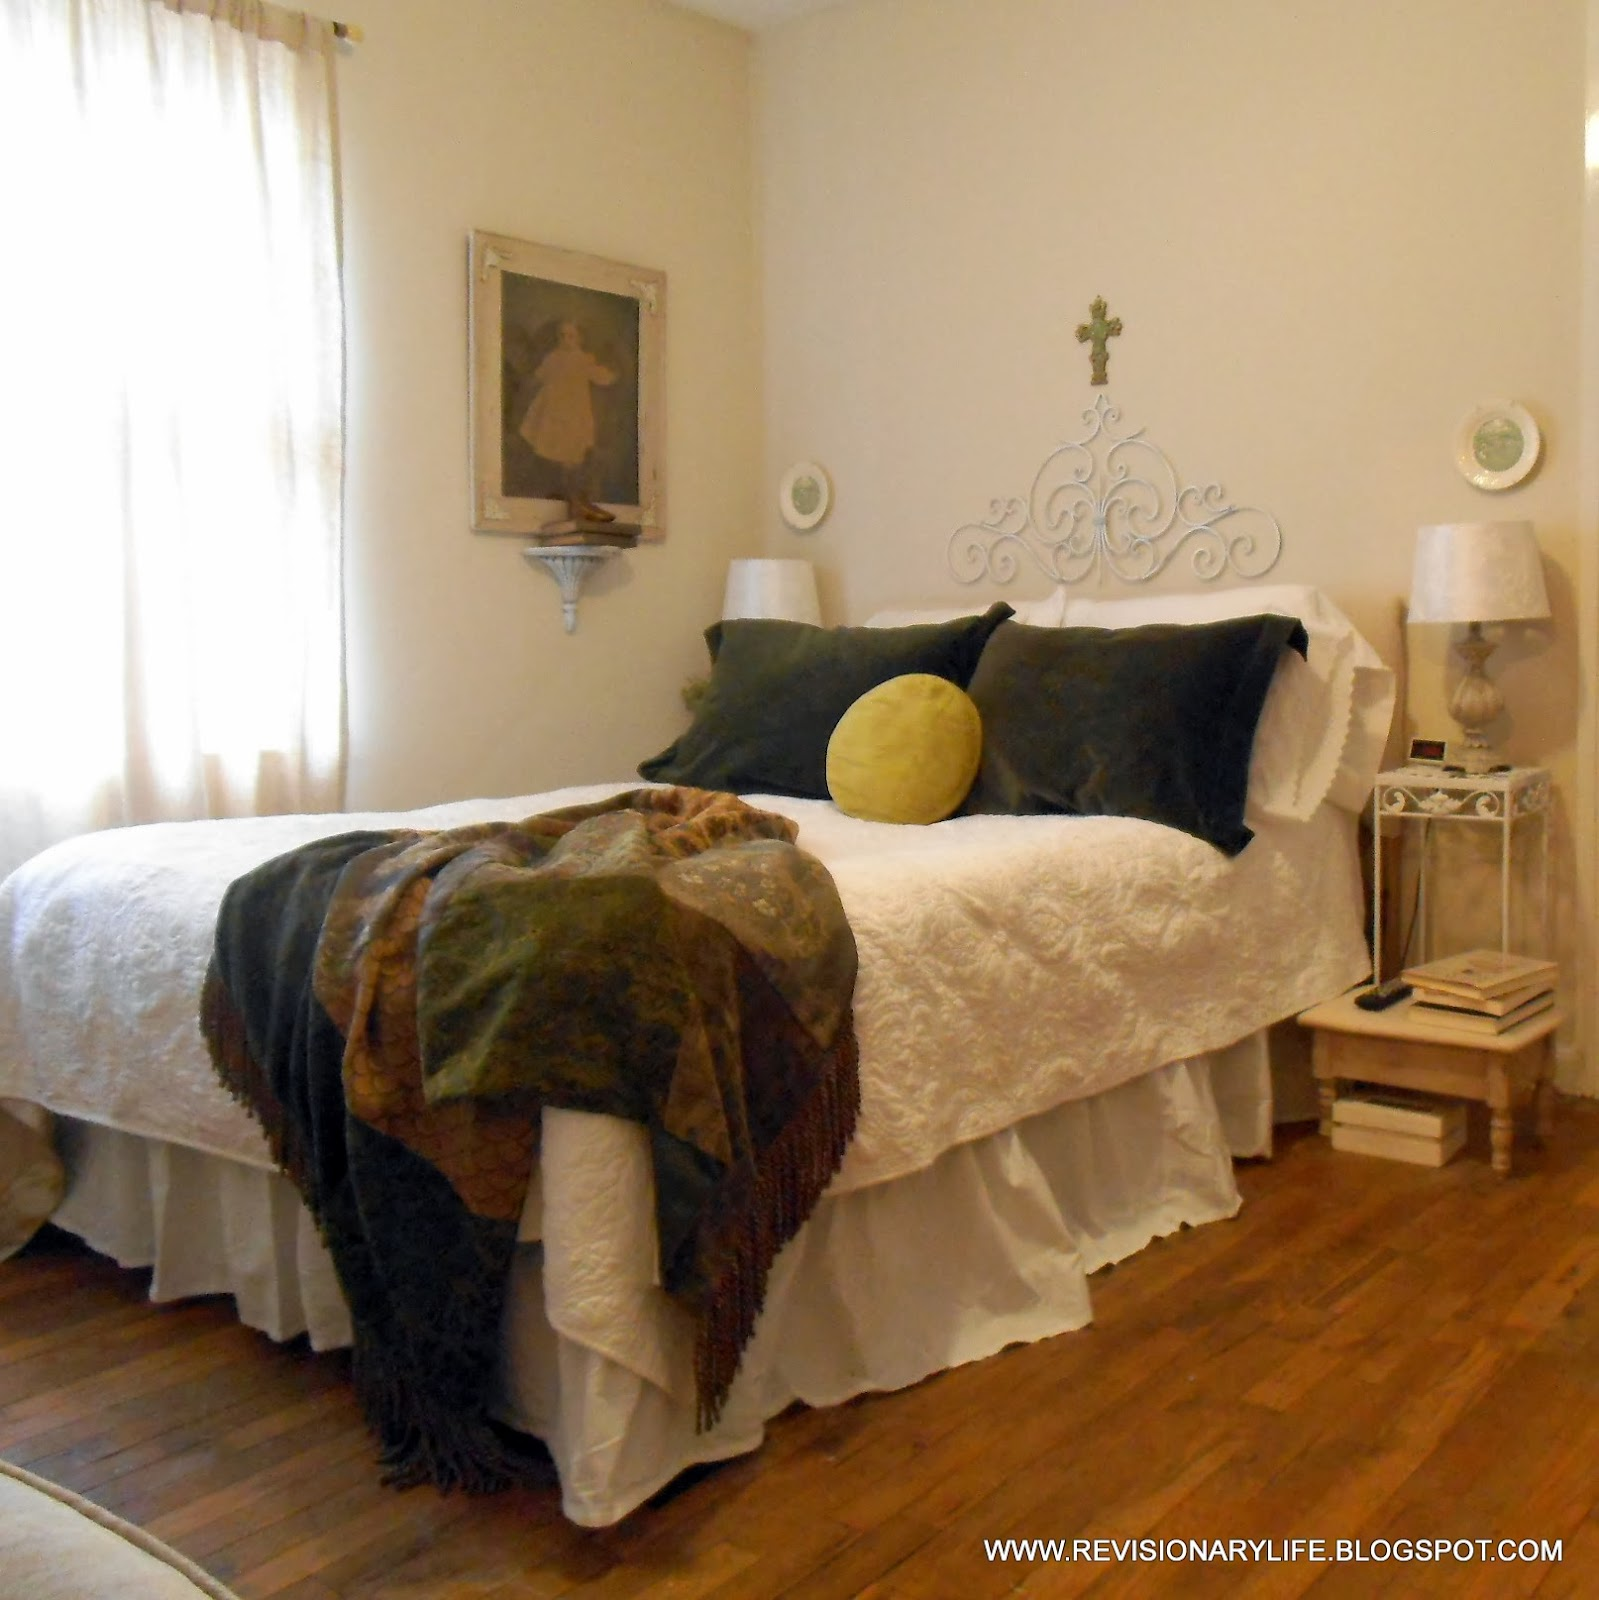 Revisionary Life Reveal Middle Bedroom In Winter Part 1